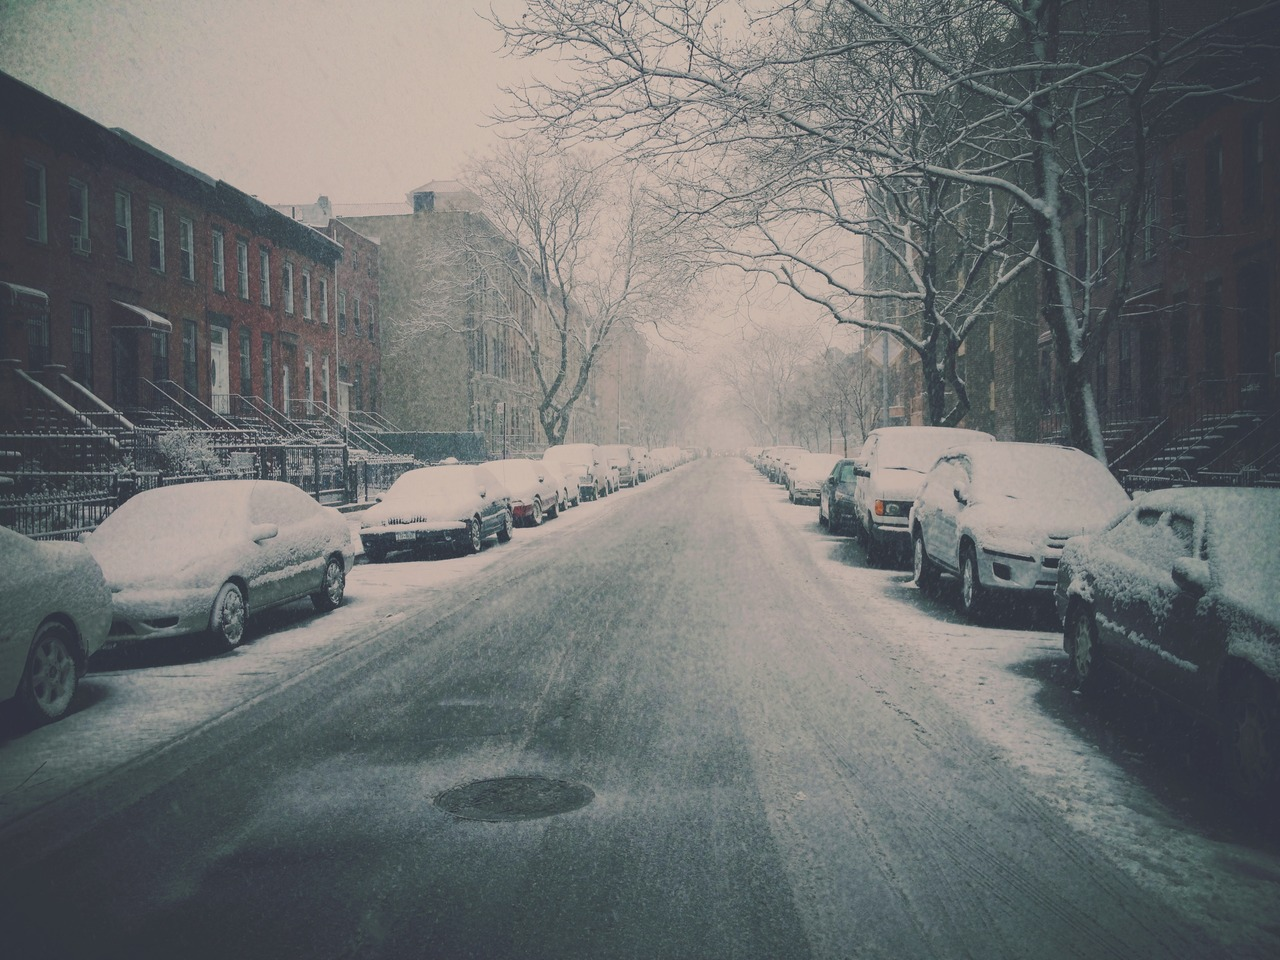 Long Walk For Donuts #peppersearching #pepper #photos #snow #brooklyn #kitkam